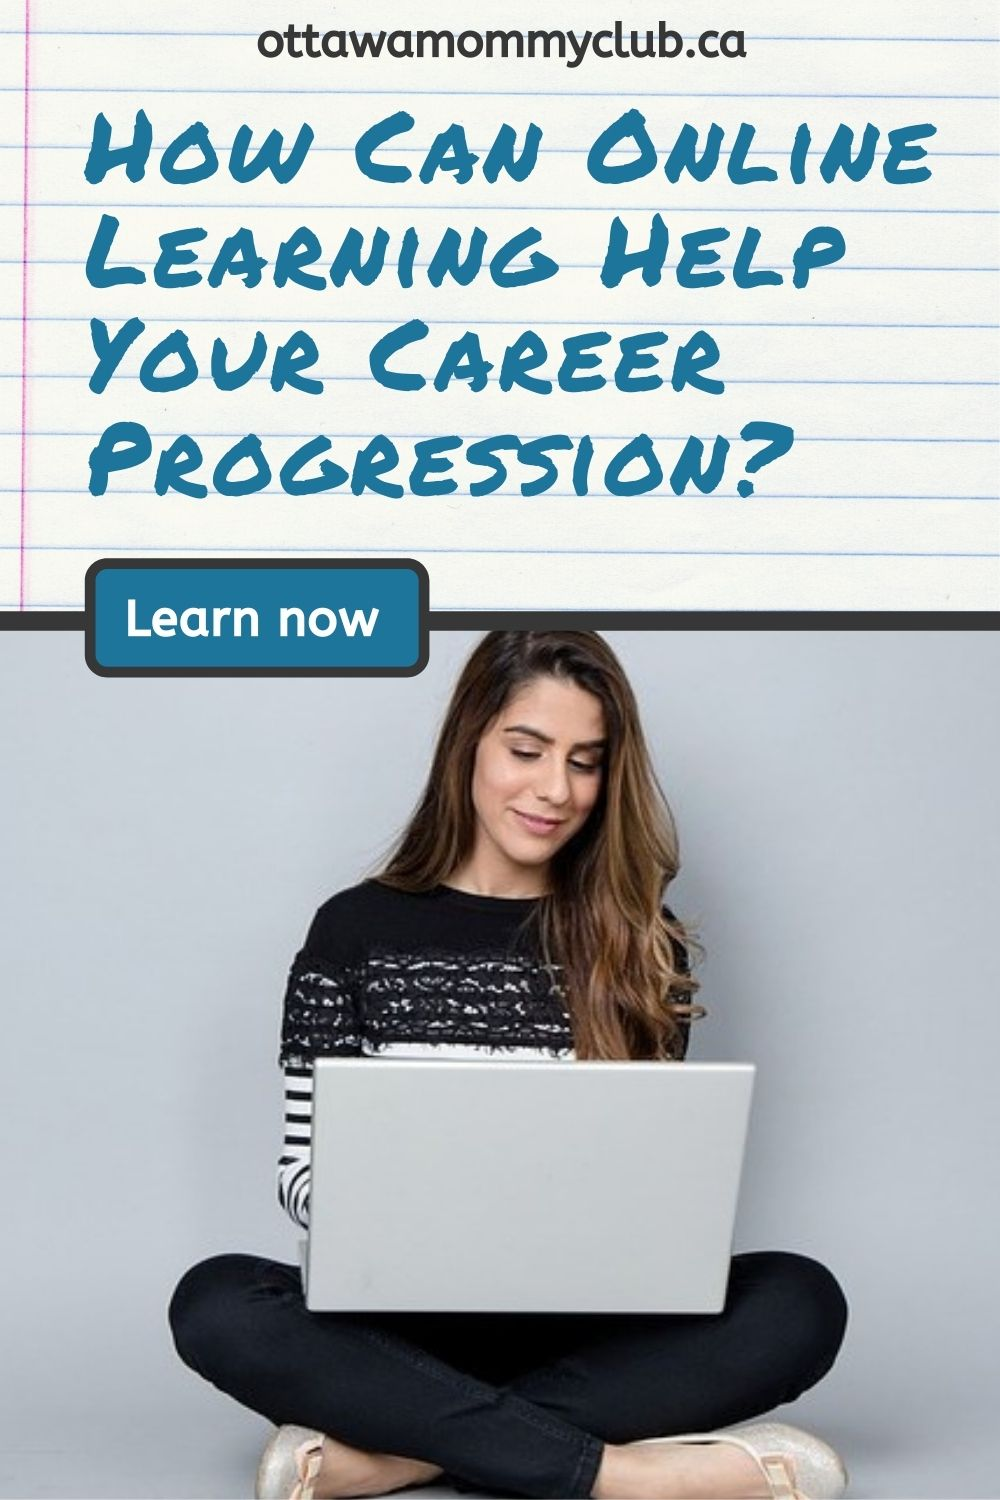 How Can Online Learning Help Your Career Progression?